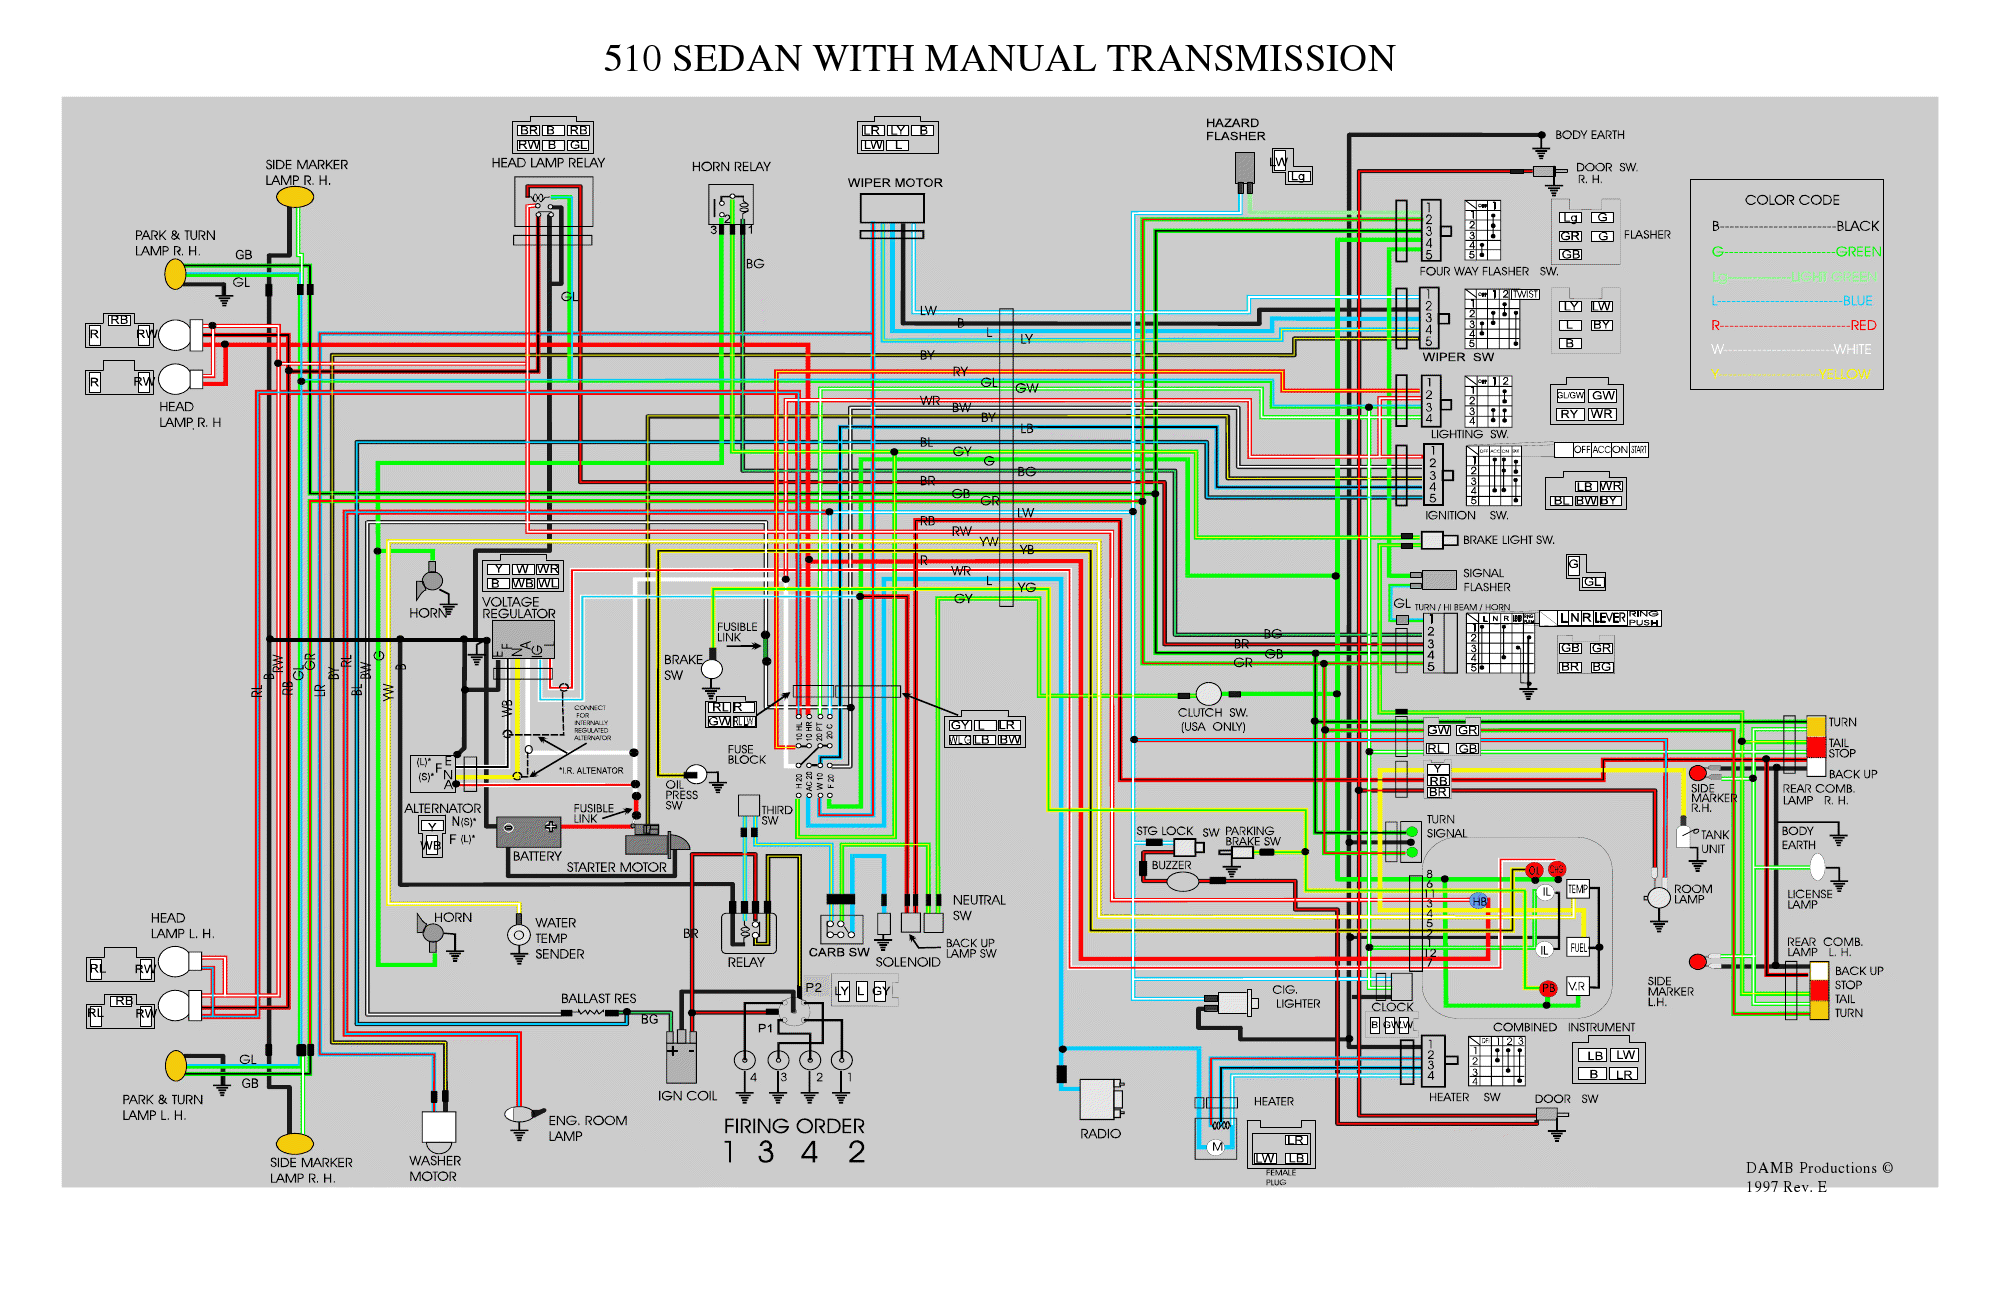 datsun_510_wiring_diagram datsun 510 wiring diagram z car datsun 510 wiring harness at bayanpartner.co